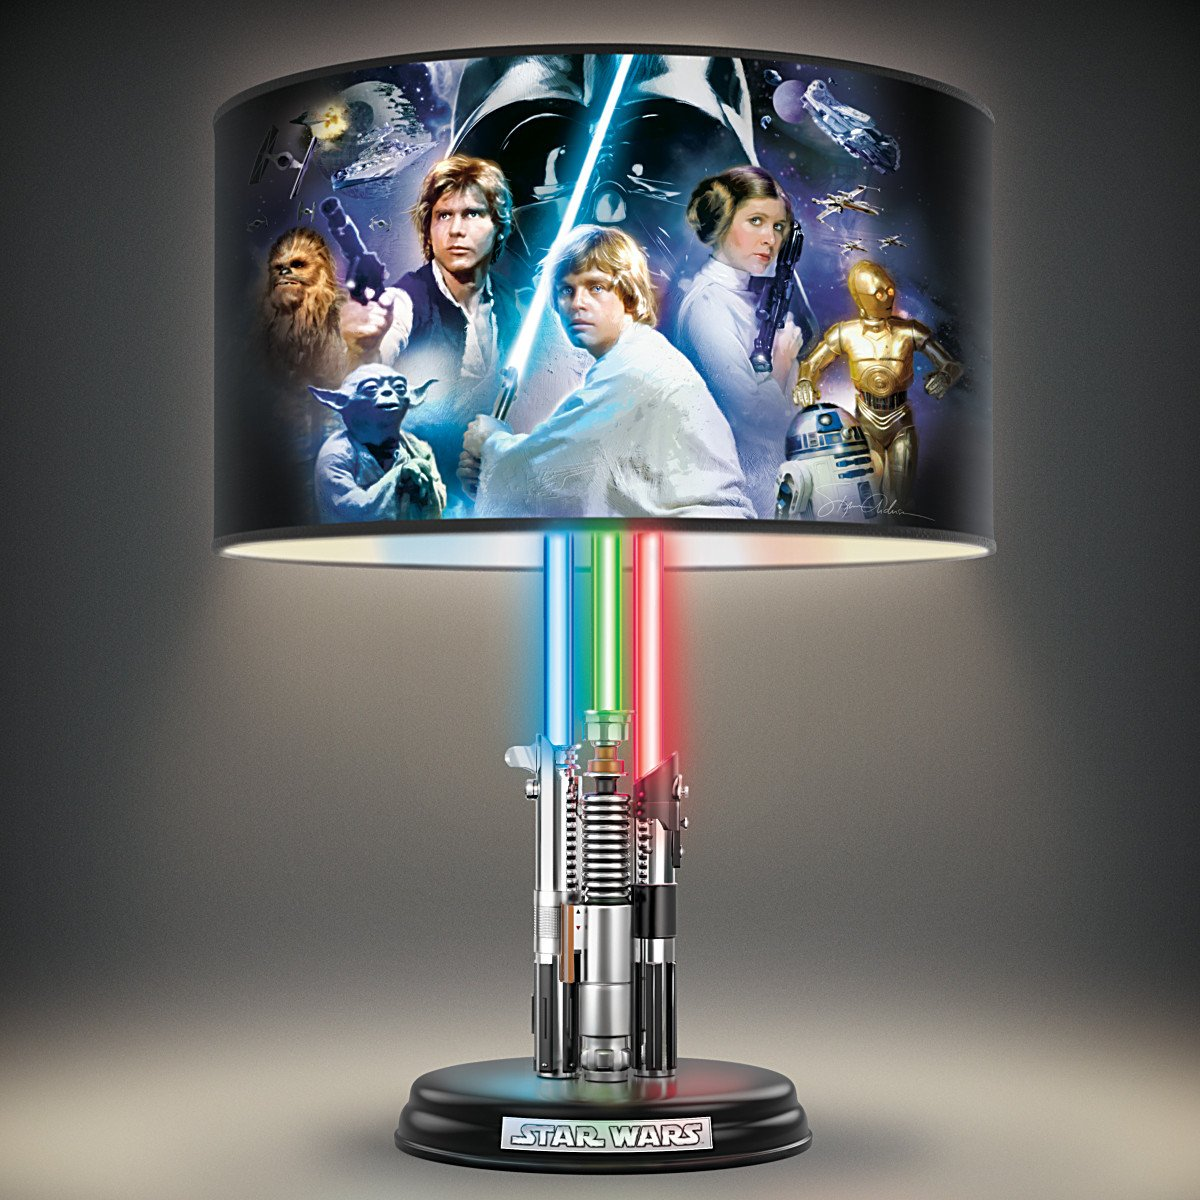 Nice Star Wars Lightsaber Lamp With Illuminated Lightsabers And Steve Anderson  Art By The Bradford Exchange     Amazon.com